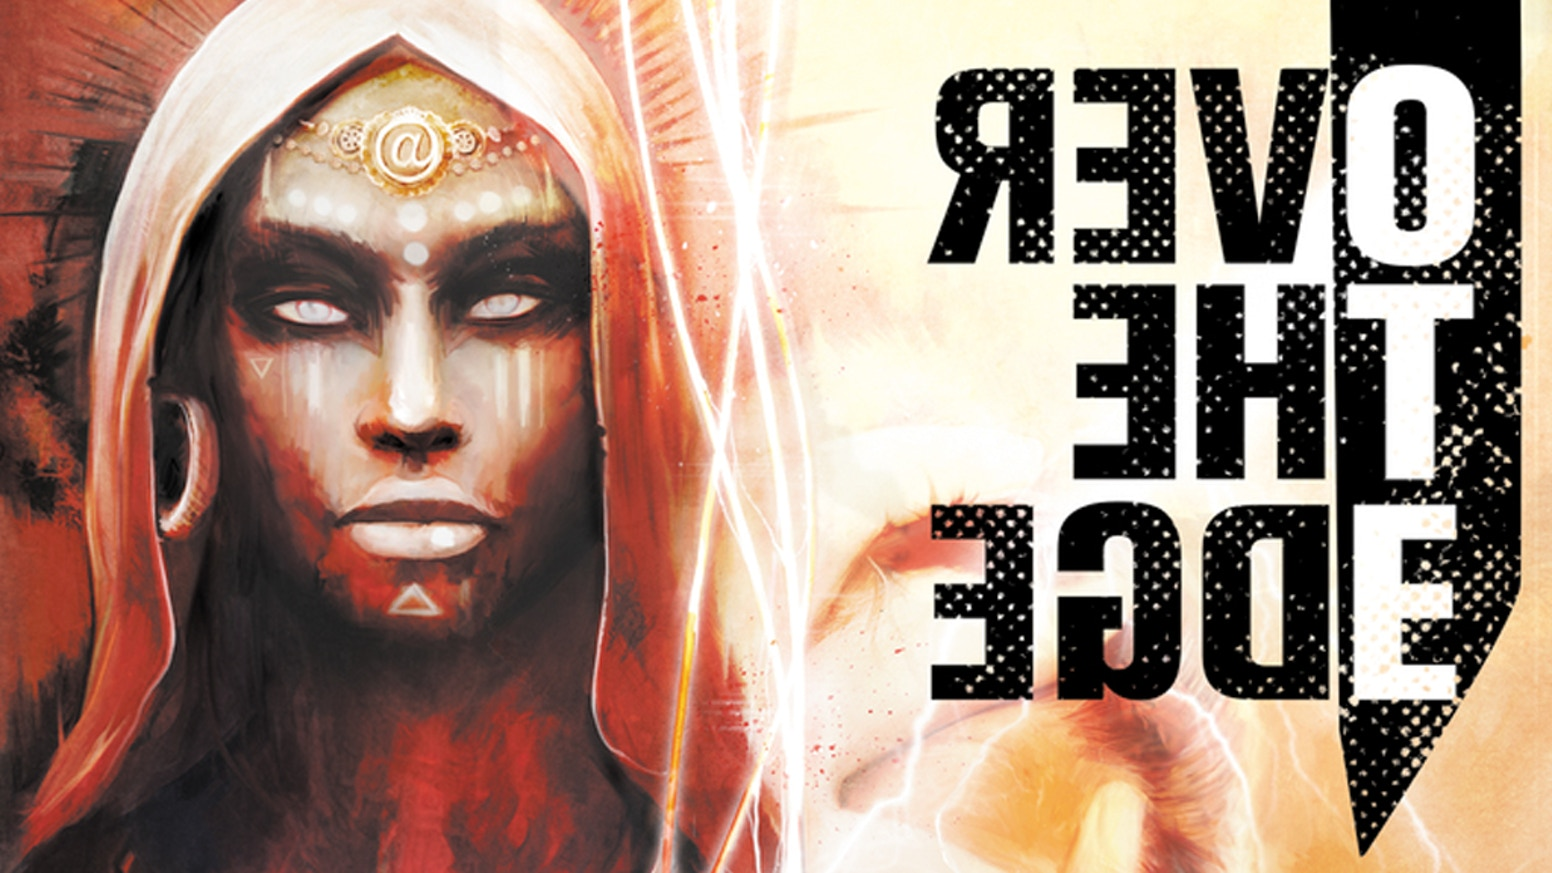 Return to the island of Al Amarja in this new edition of Jonathan Tweet's freeform roleplaying game of paranormal chaos.